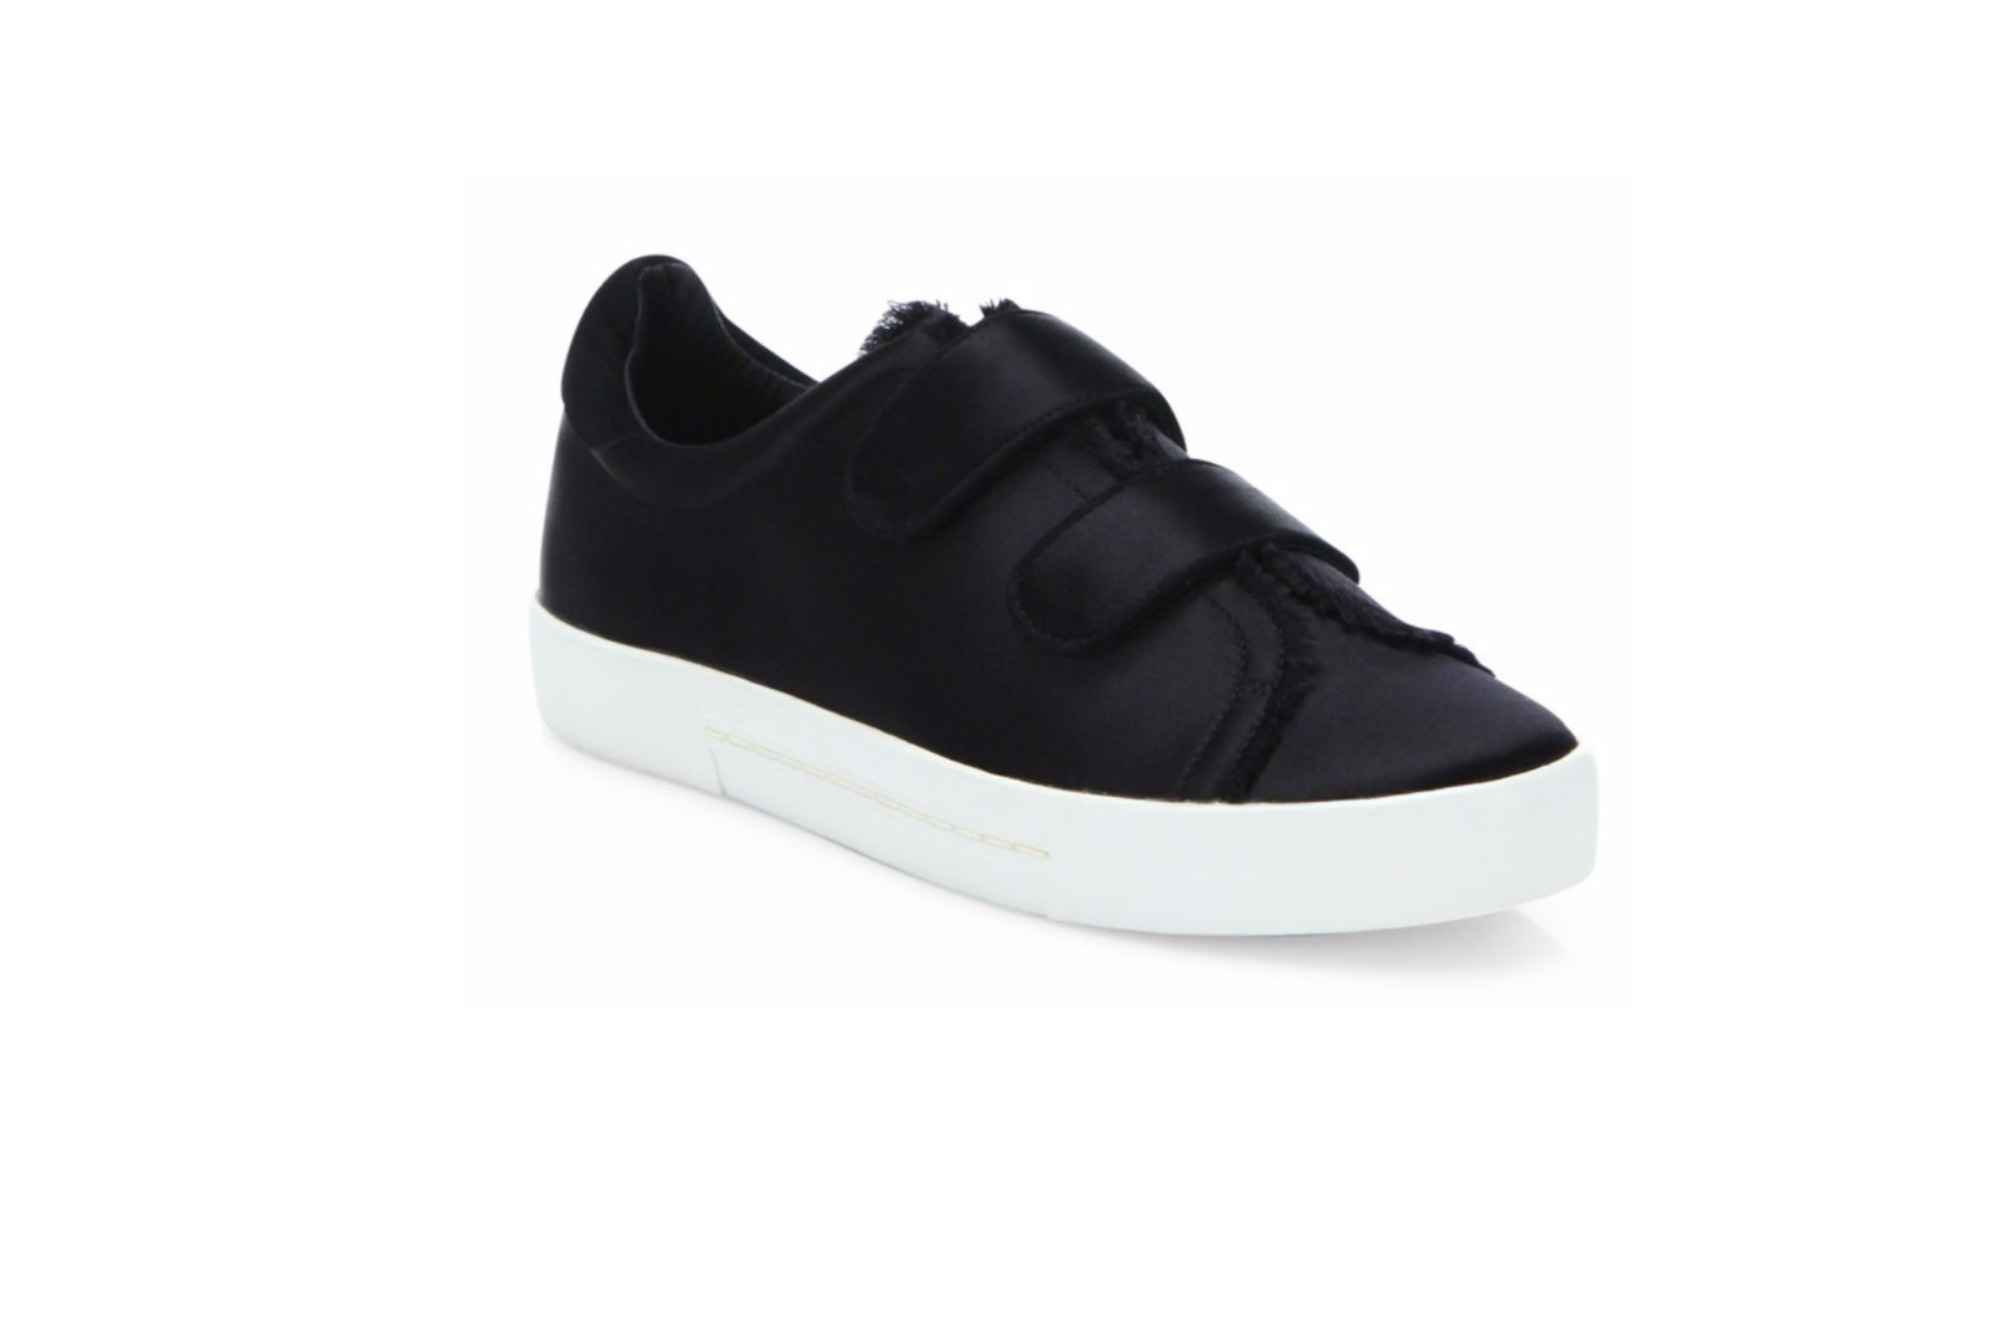 Joie Diata Satin Grip-Tape Sneakers